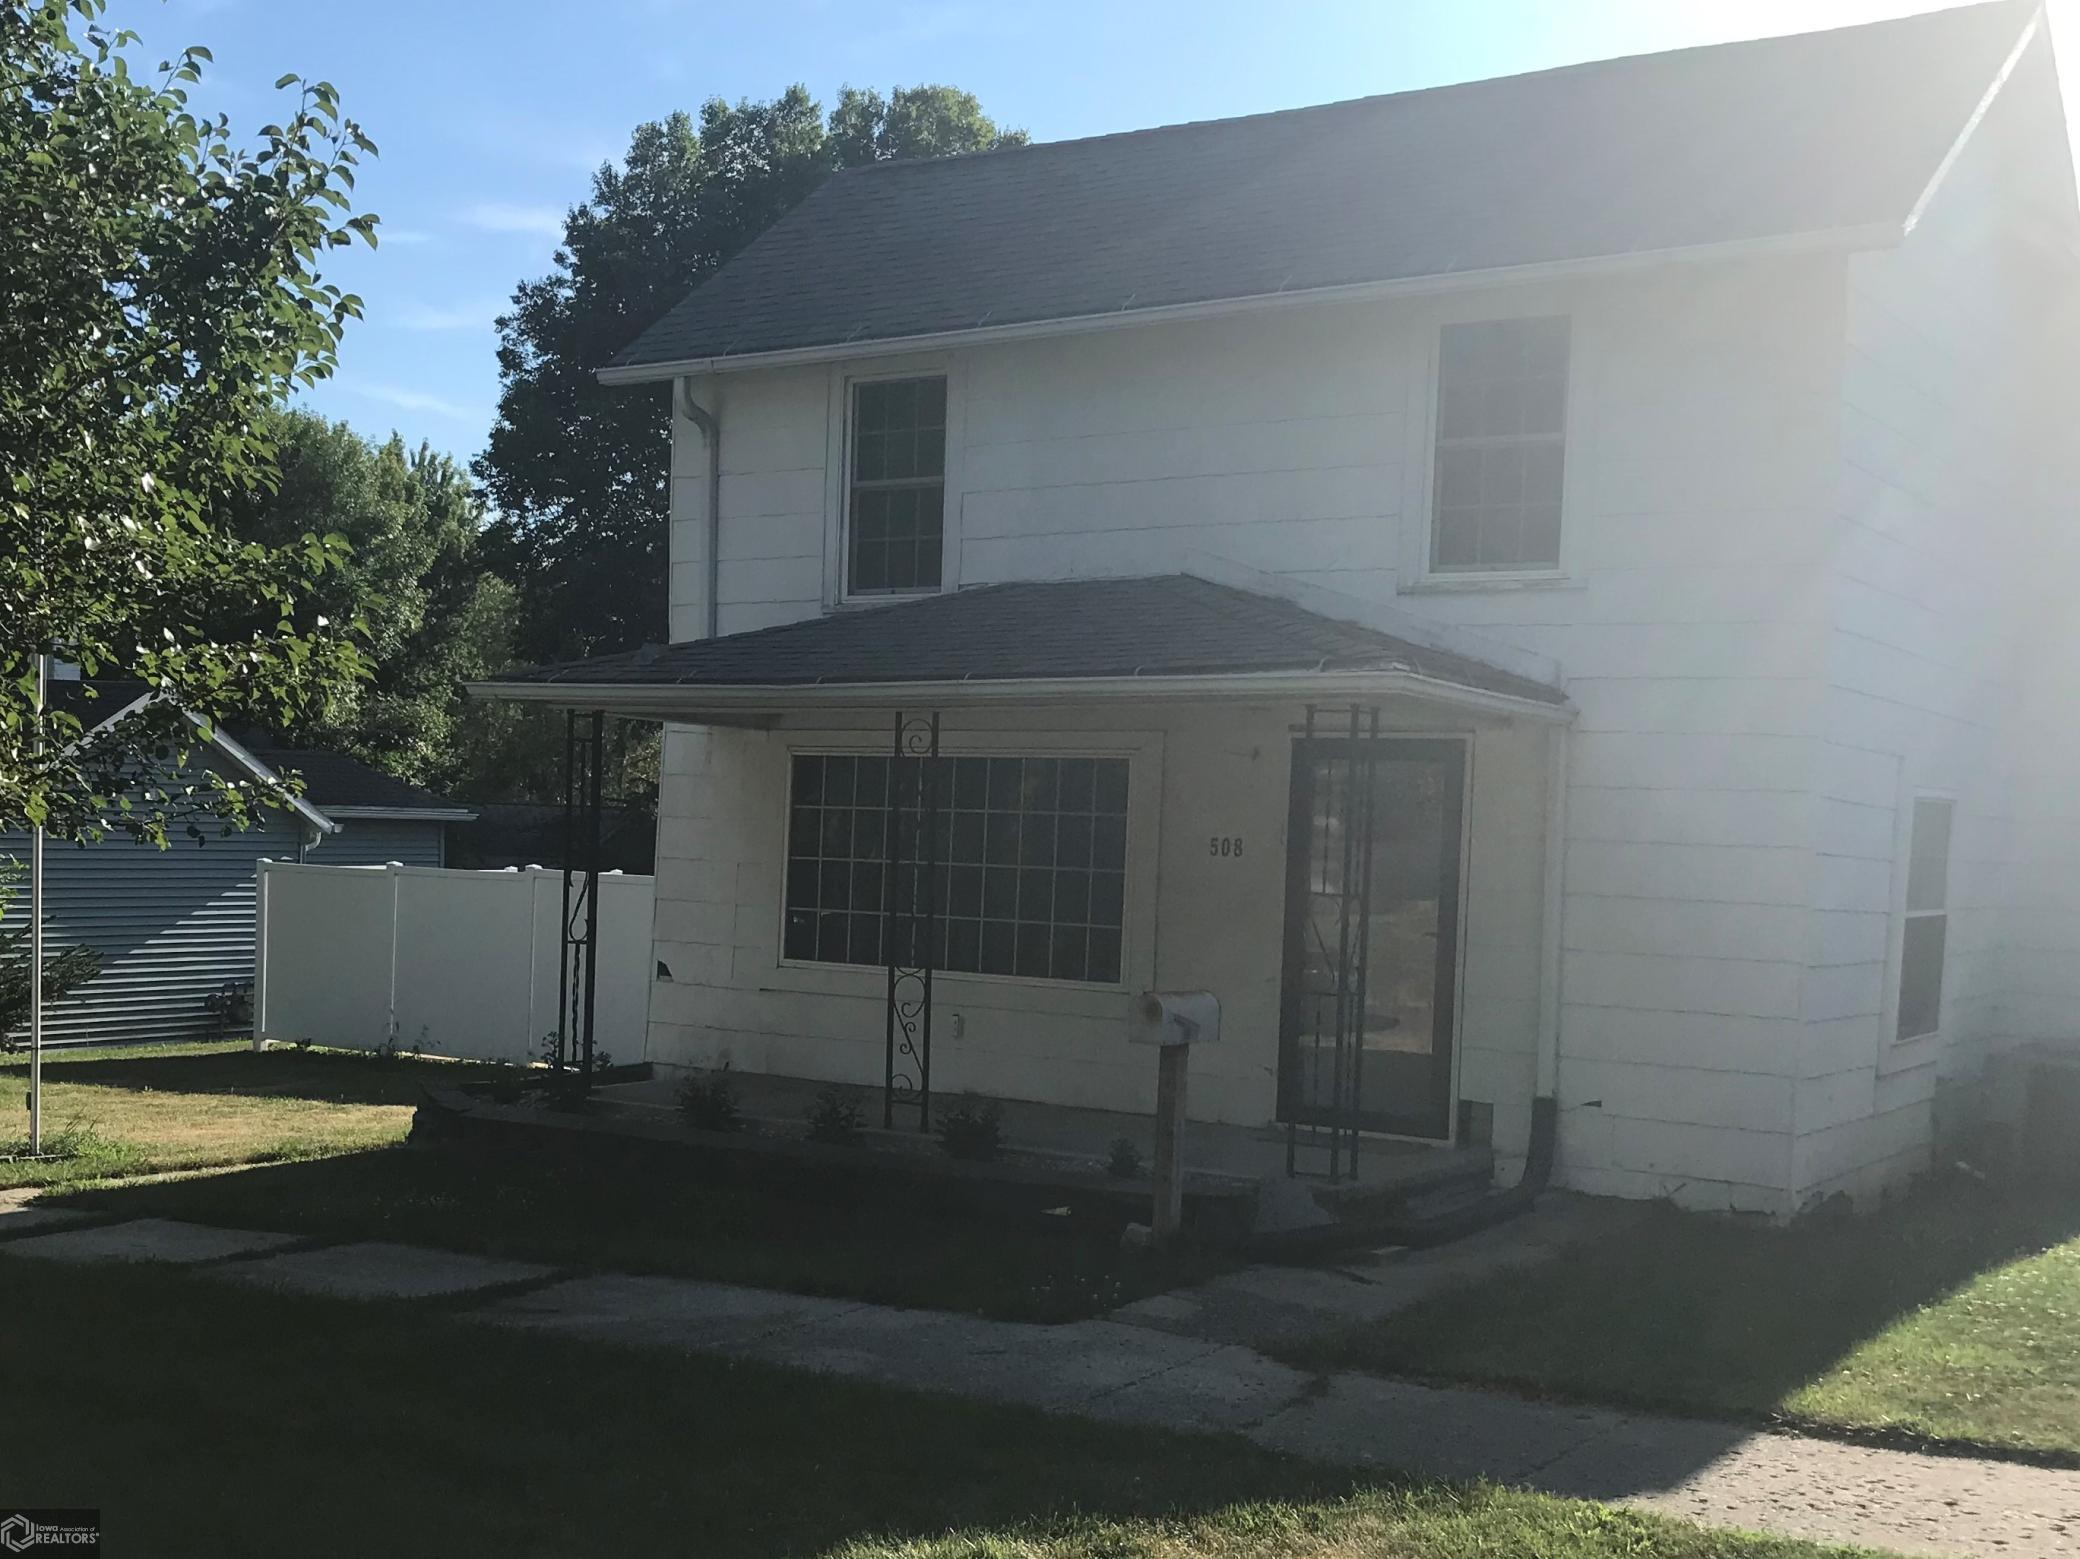 508 Main Property Photo - Ida Grove, IA real estate listing